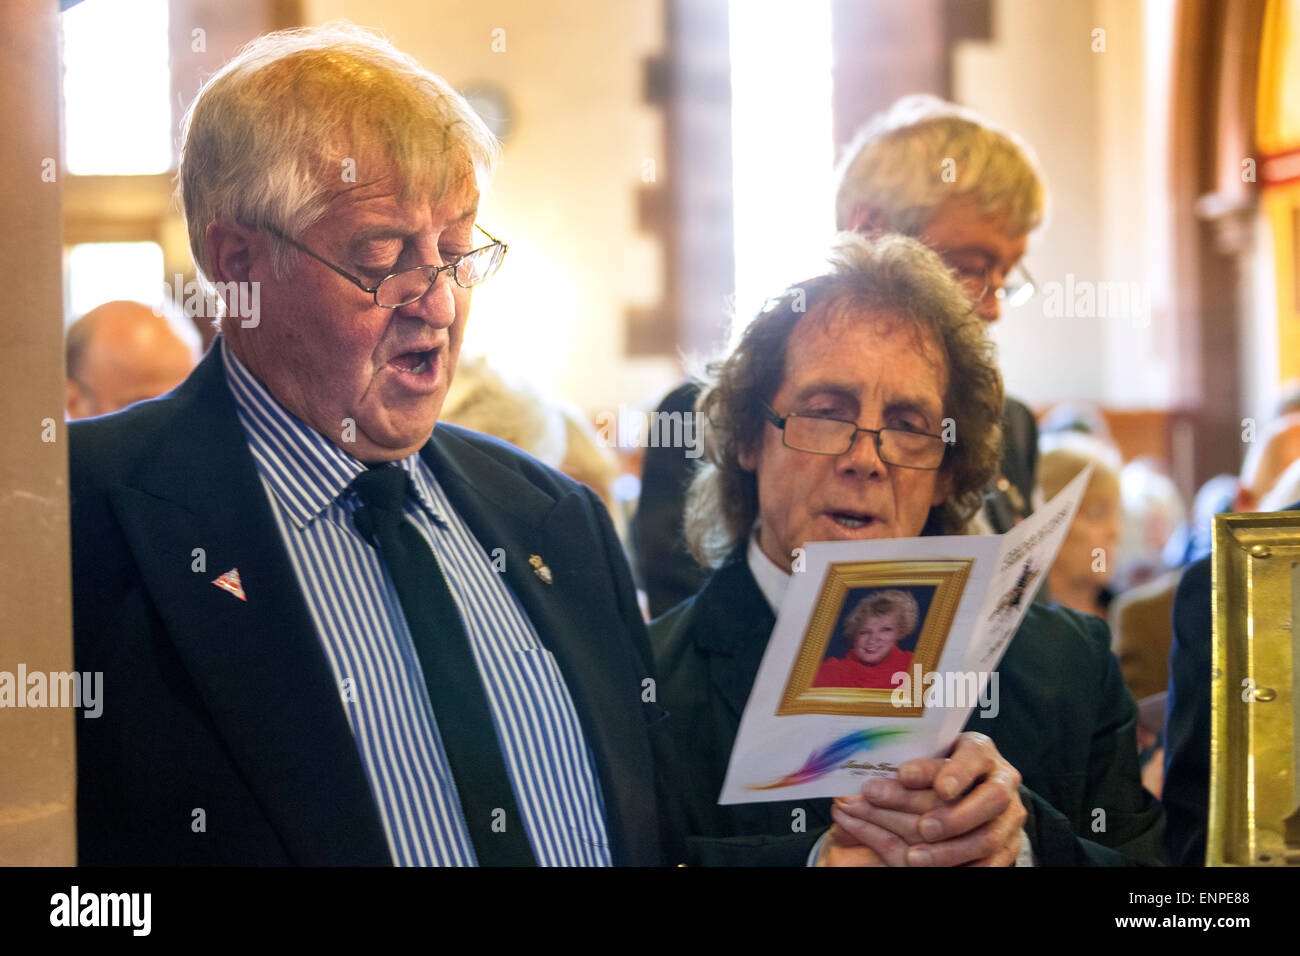 Holy Trinity Church, Chesterton, UK. 8 May 2015. Husband Colin Gregory and former Stoke City, Everton and Aston - Stock Image